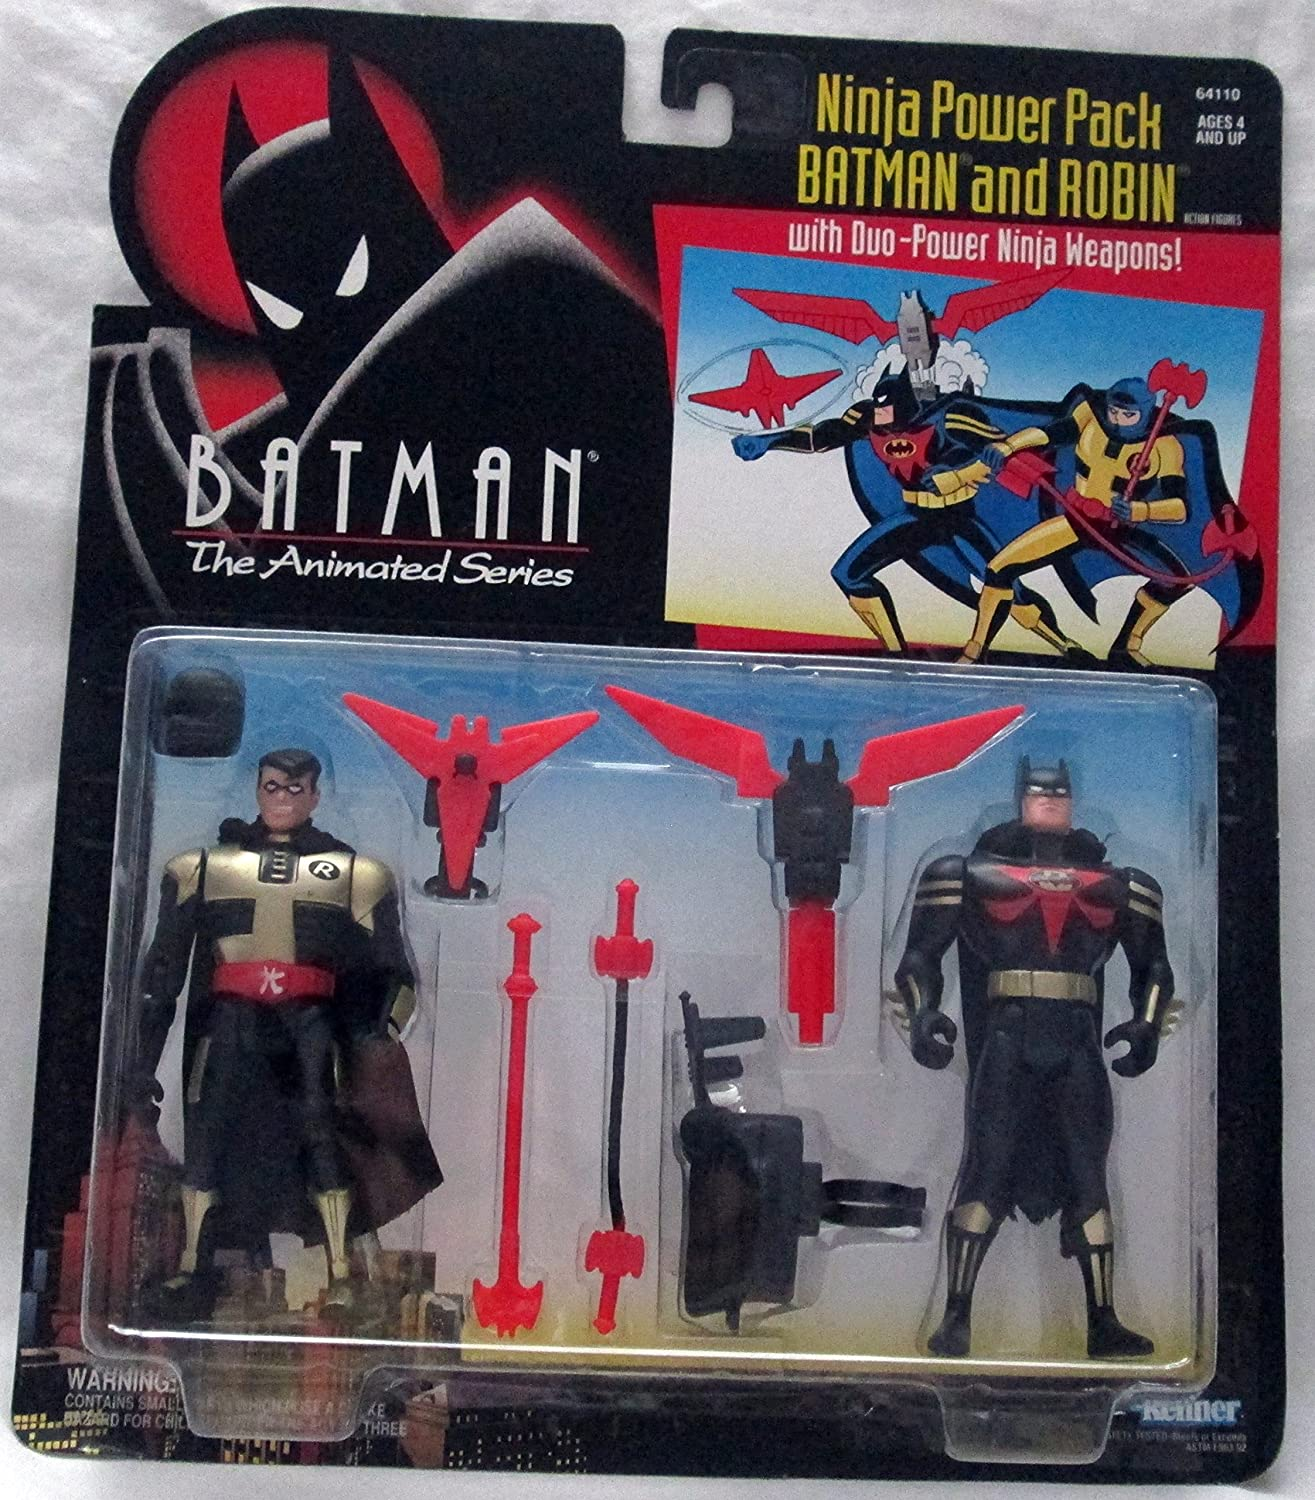 Batman the Animated Series Ninja Power Pack Batman and Robin Action Figures